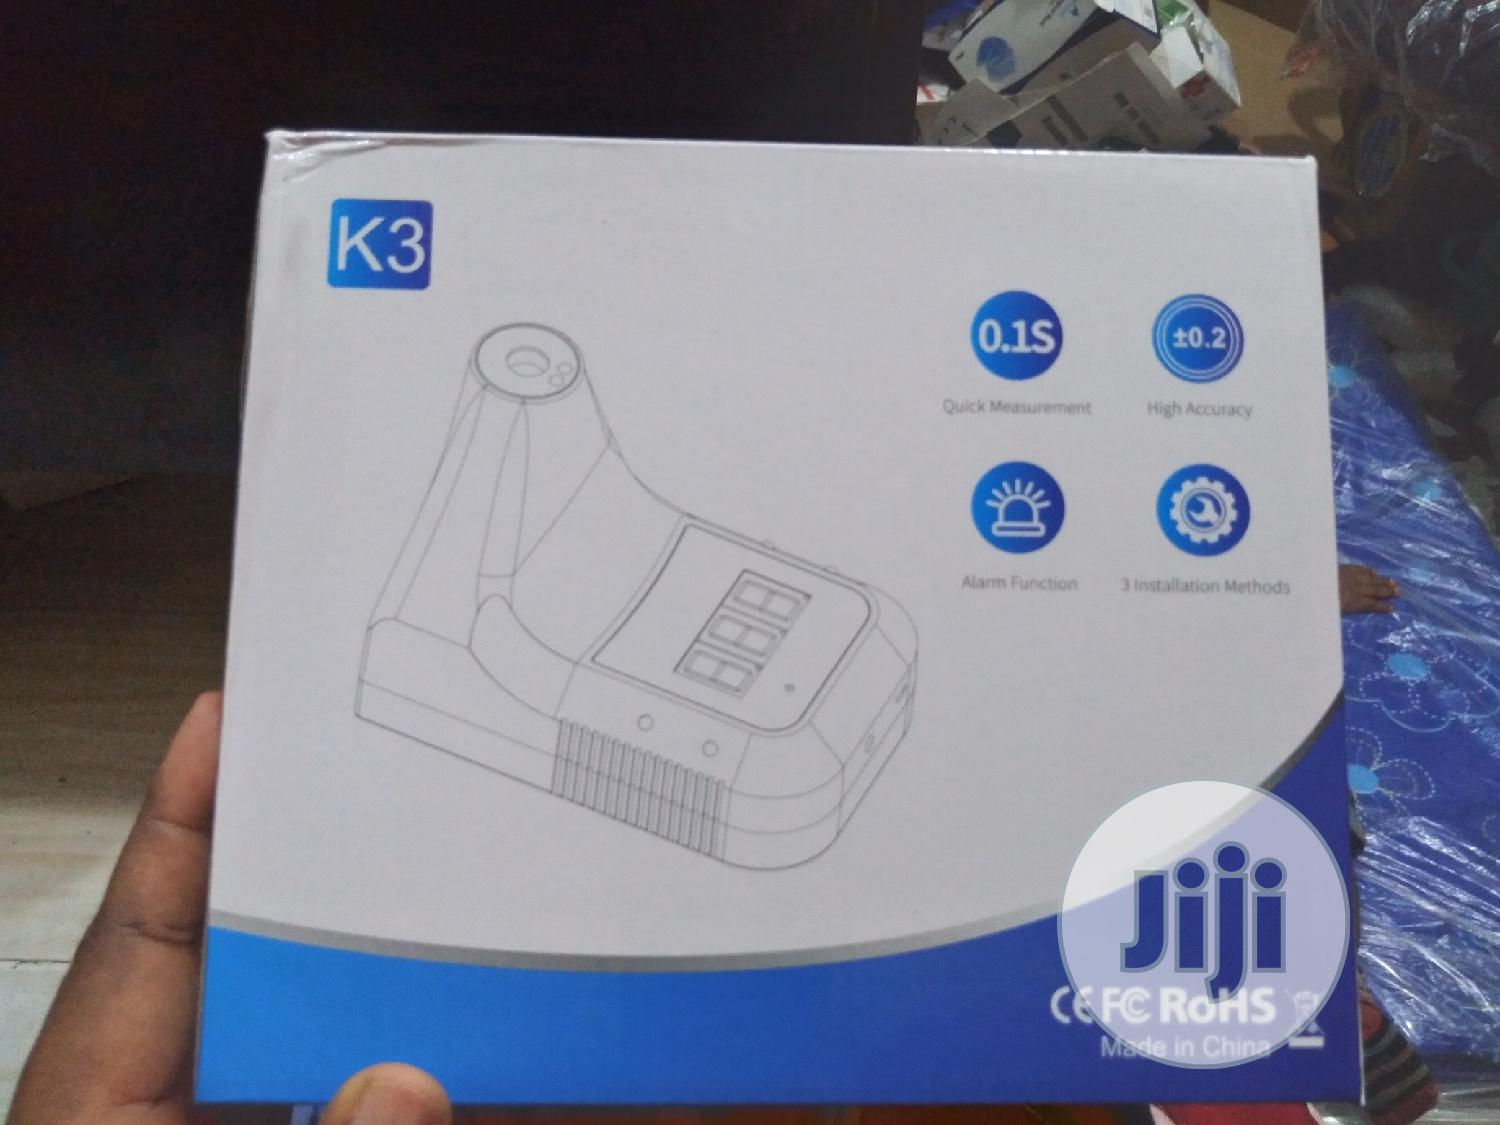 K3 Wall Mounted Thermometer New Brand | Medical Equipment for sale in Yaba, Lagos State, Nigeria